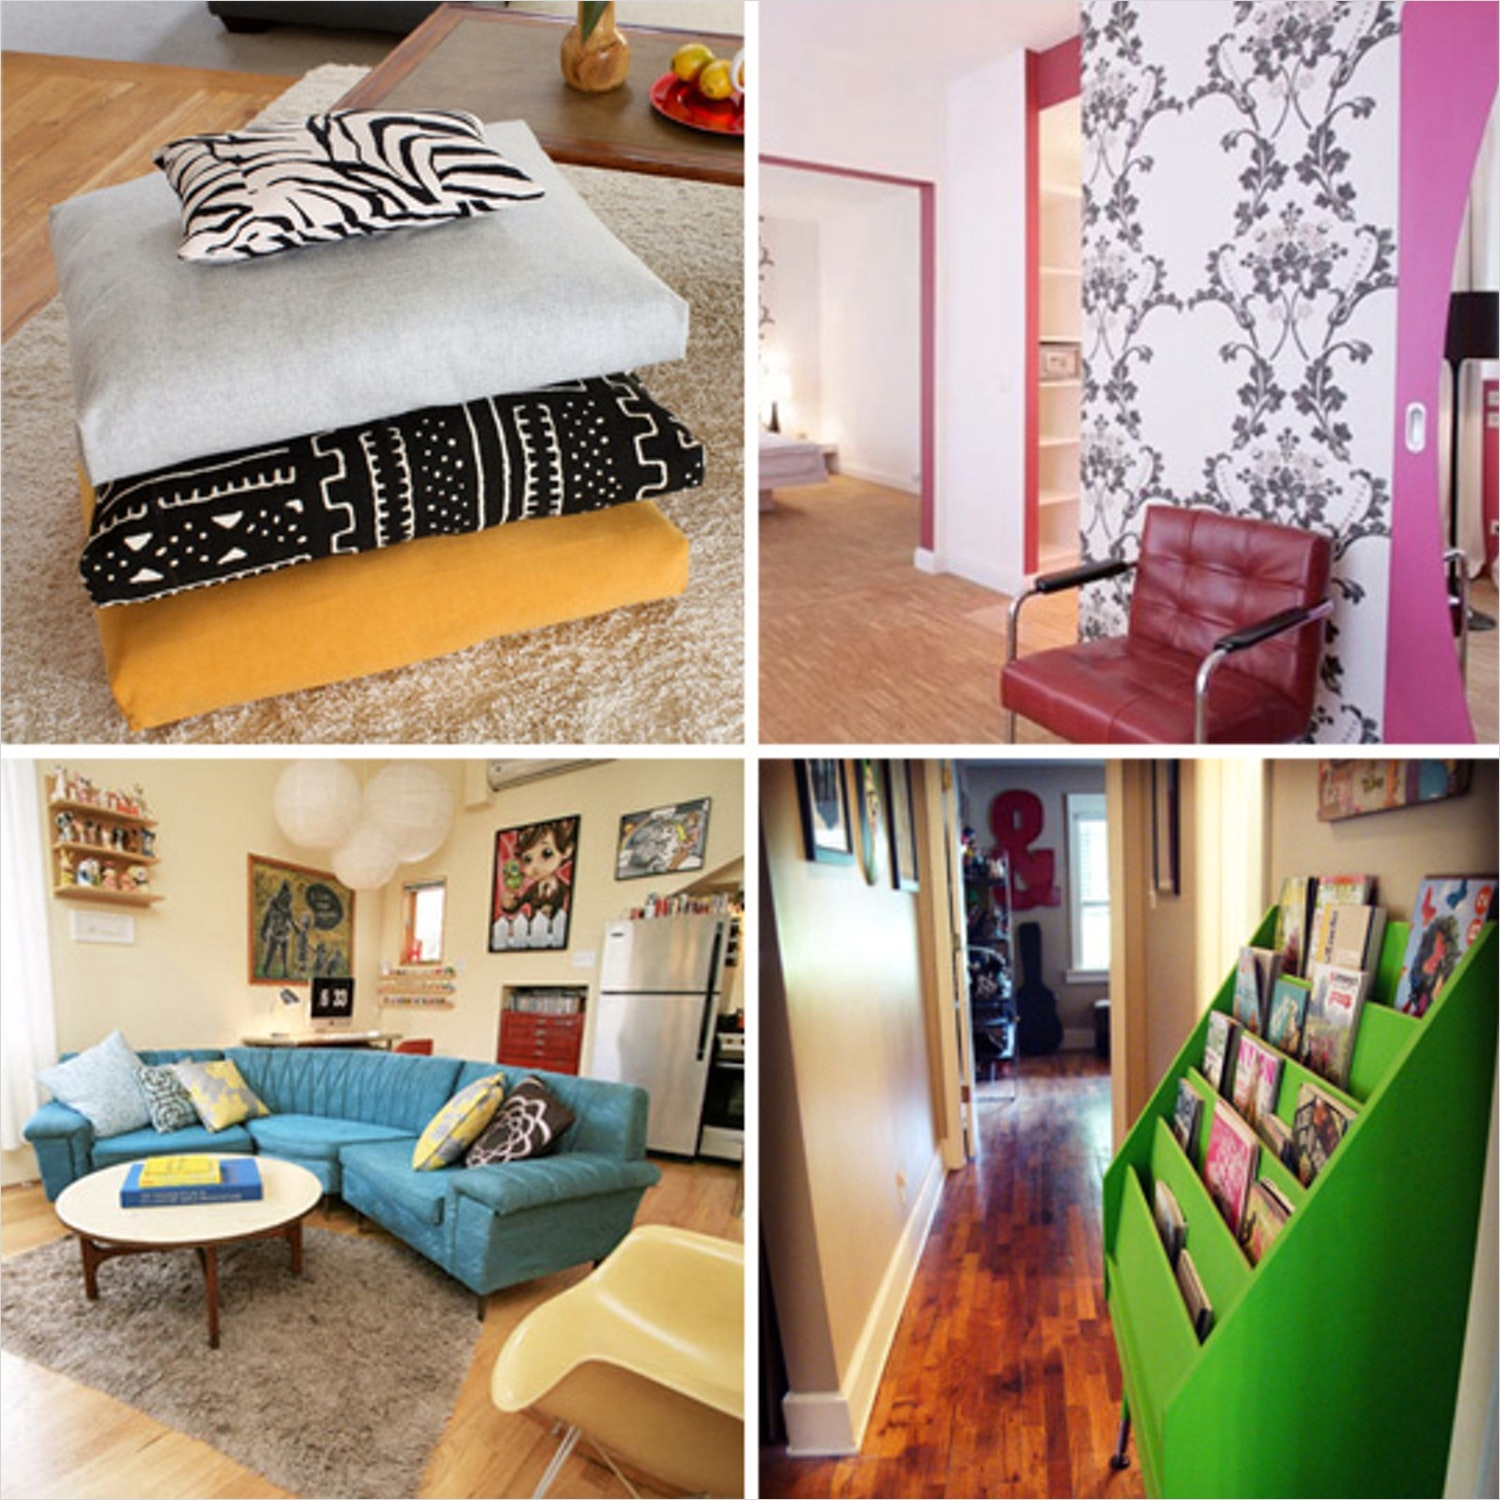 44 Inexpensive Apartment Decorating Ideas 13 20 Thrifty Frugal & Inexpensive Decorating Ideas 7